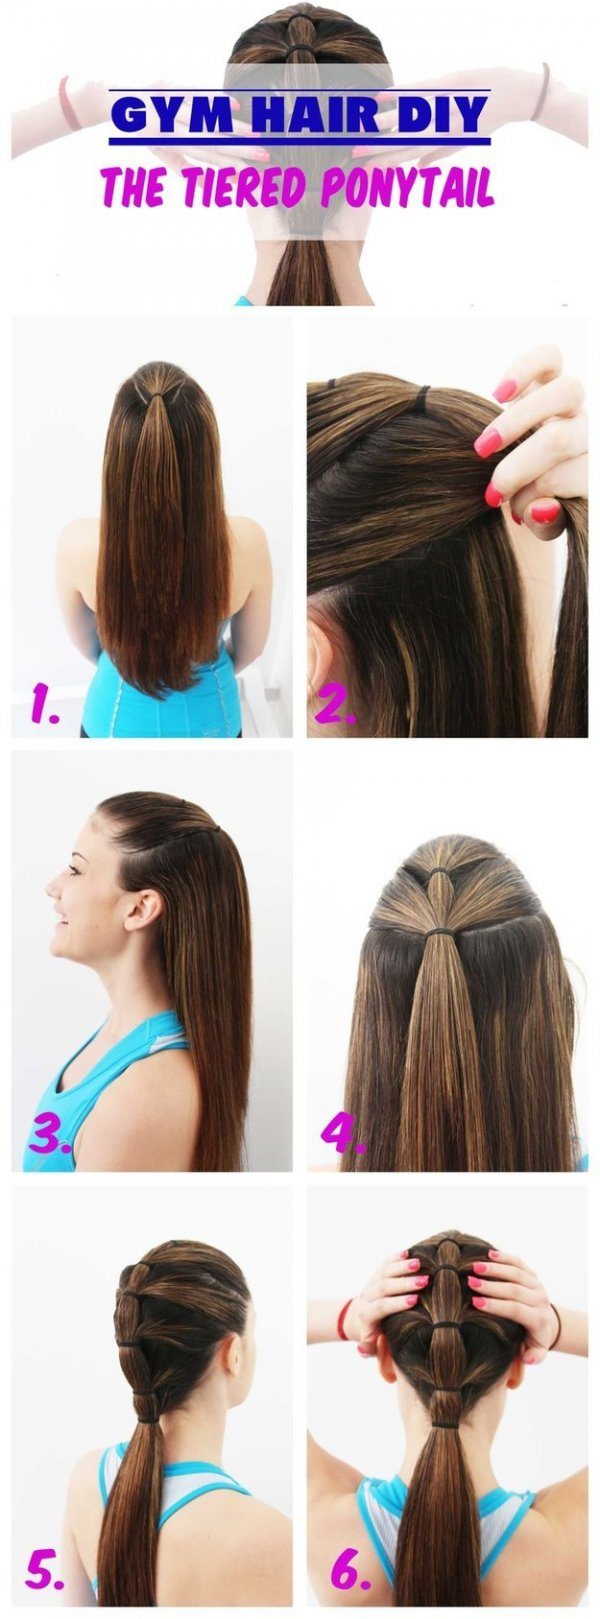 The Perfect Gym Hairstyle